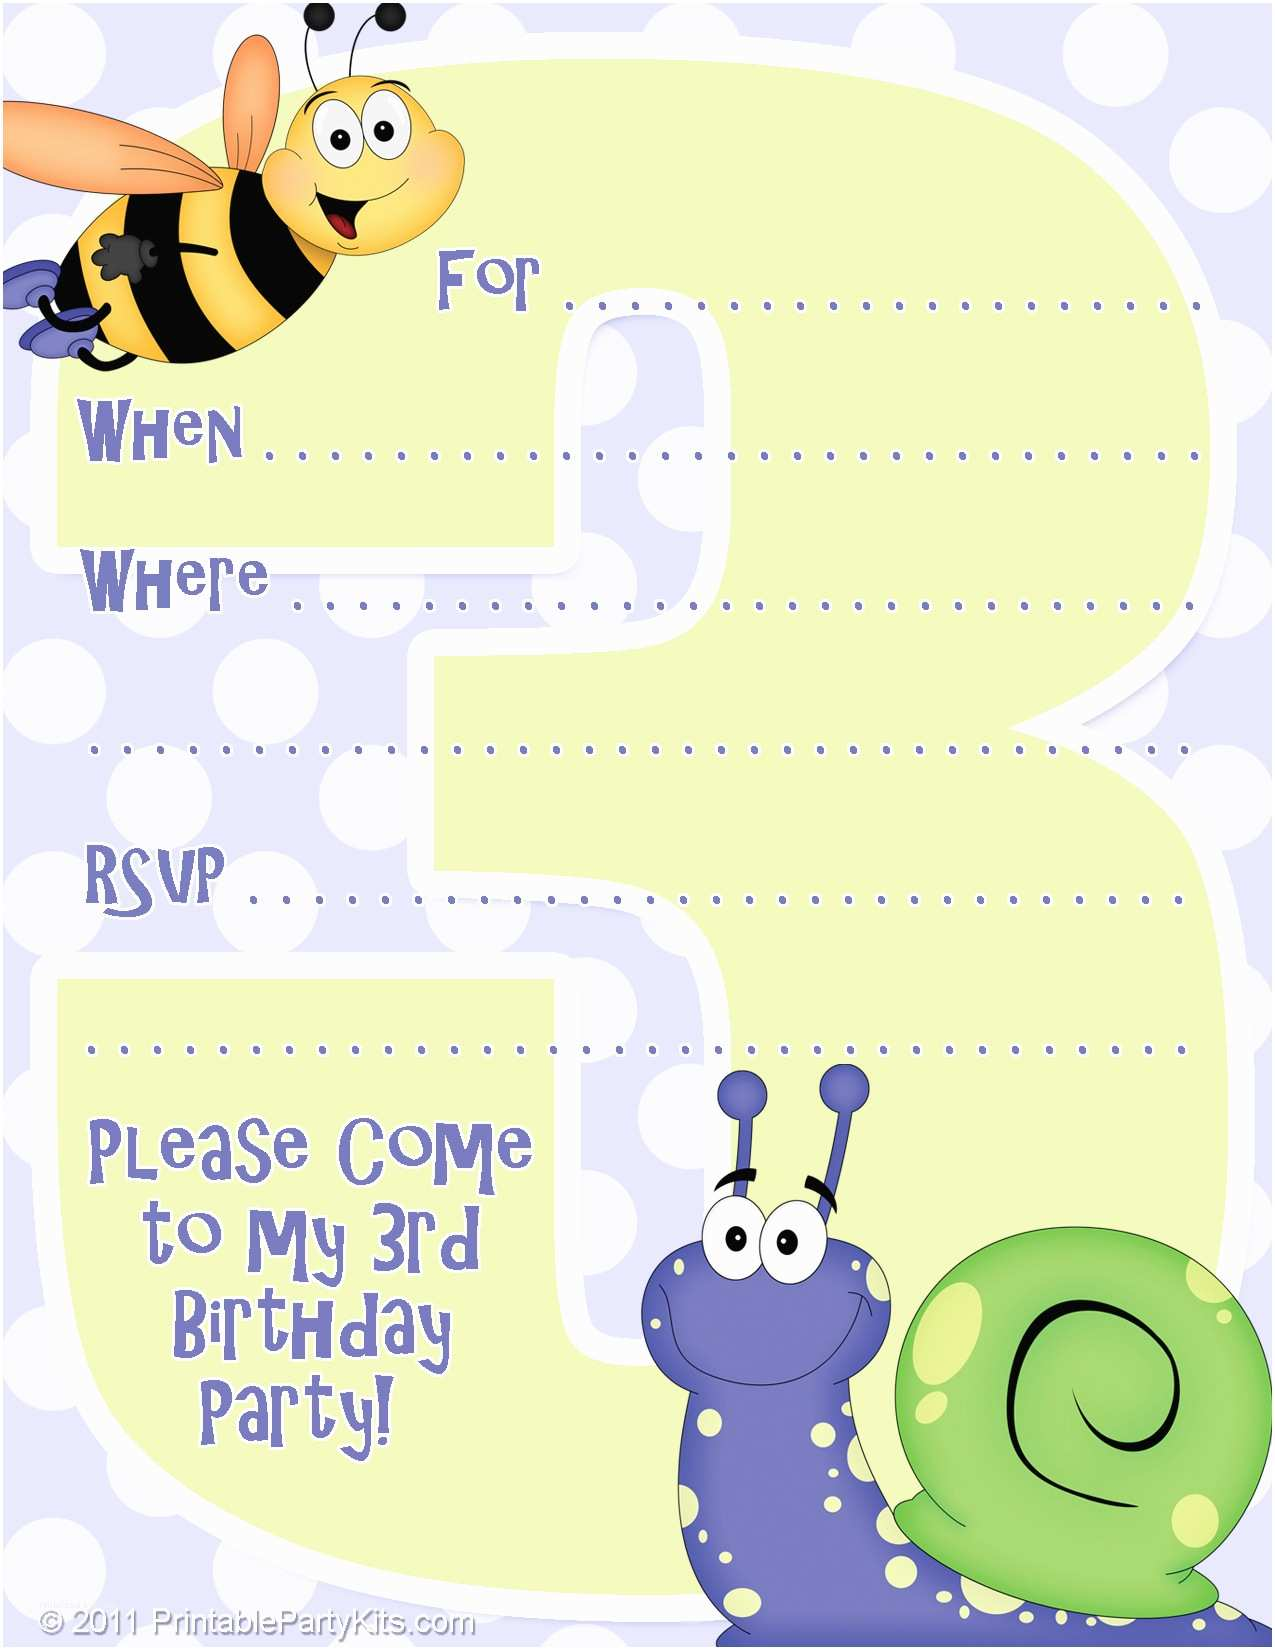 Free Printable Birthday Party Invitations Free Printable Birthday Party Invitations